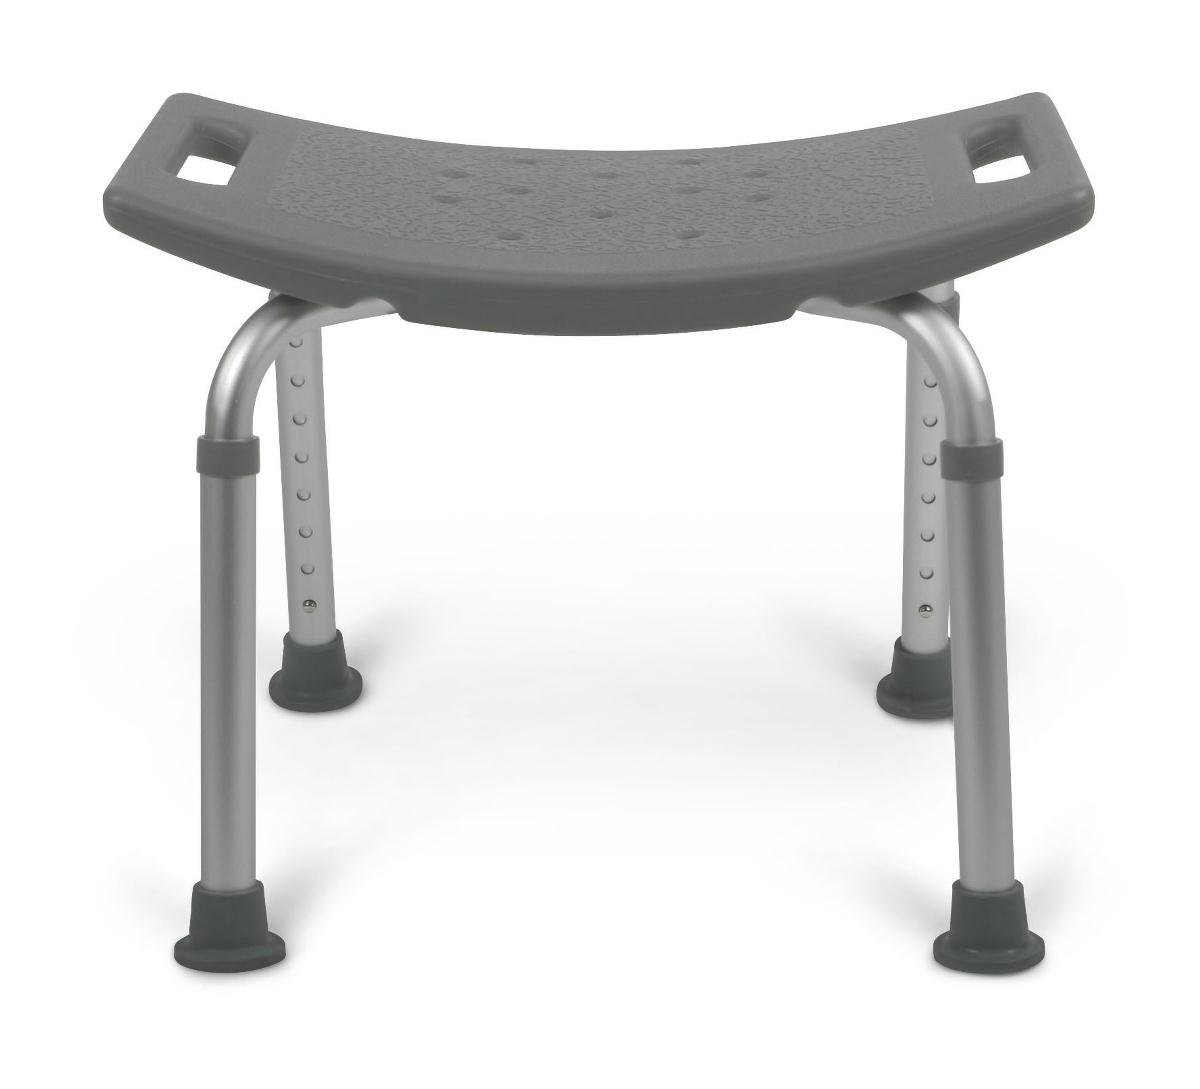 B005FGLW7O Medline MDS89740KD Knockdown Aluminum Bath Benches without Back (Pack of 2) 51EHNMo5k7L